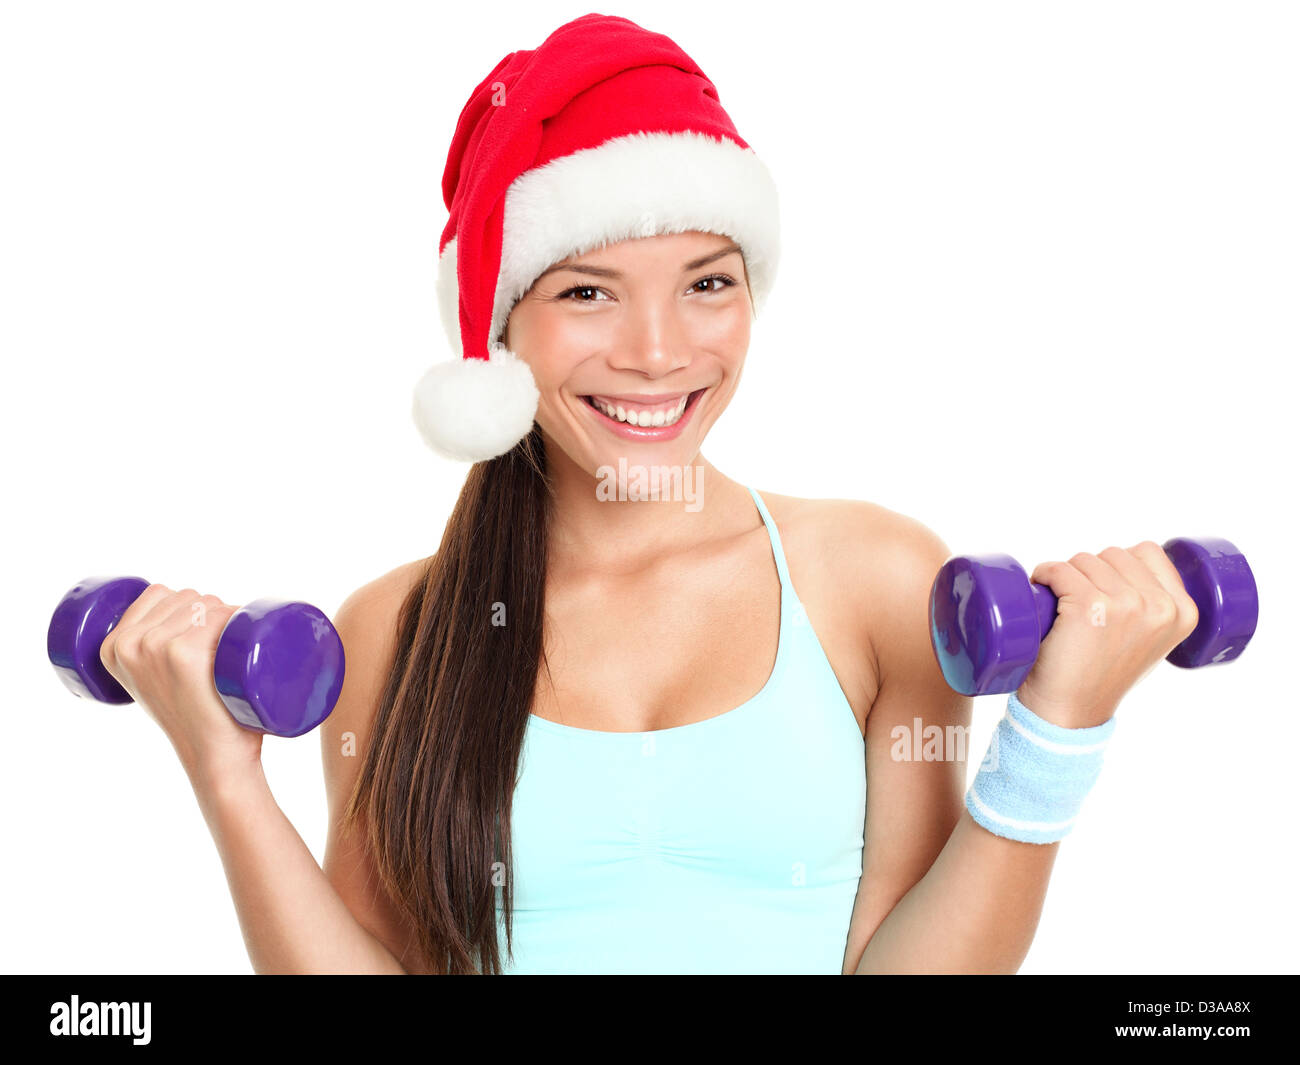 Portrait of happy mixed race young female fitness model woman wearing Santa hat lifting dumbbells isolated on white - Stock Image